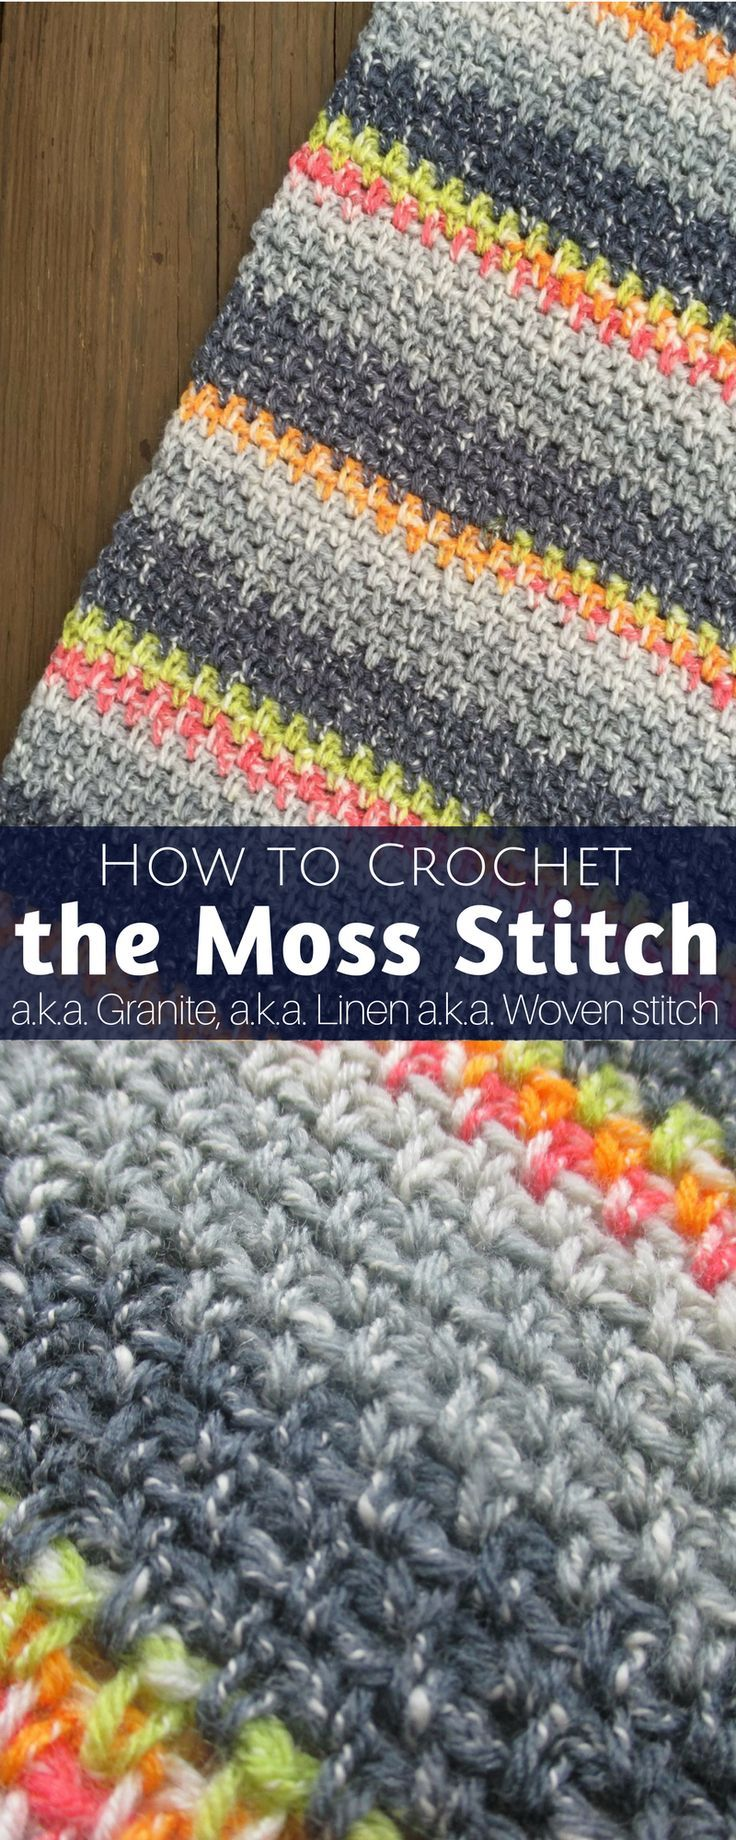 How To Crochet The Moss Stitch (written And Video Tutorial)  Add A New